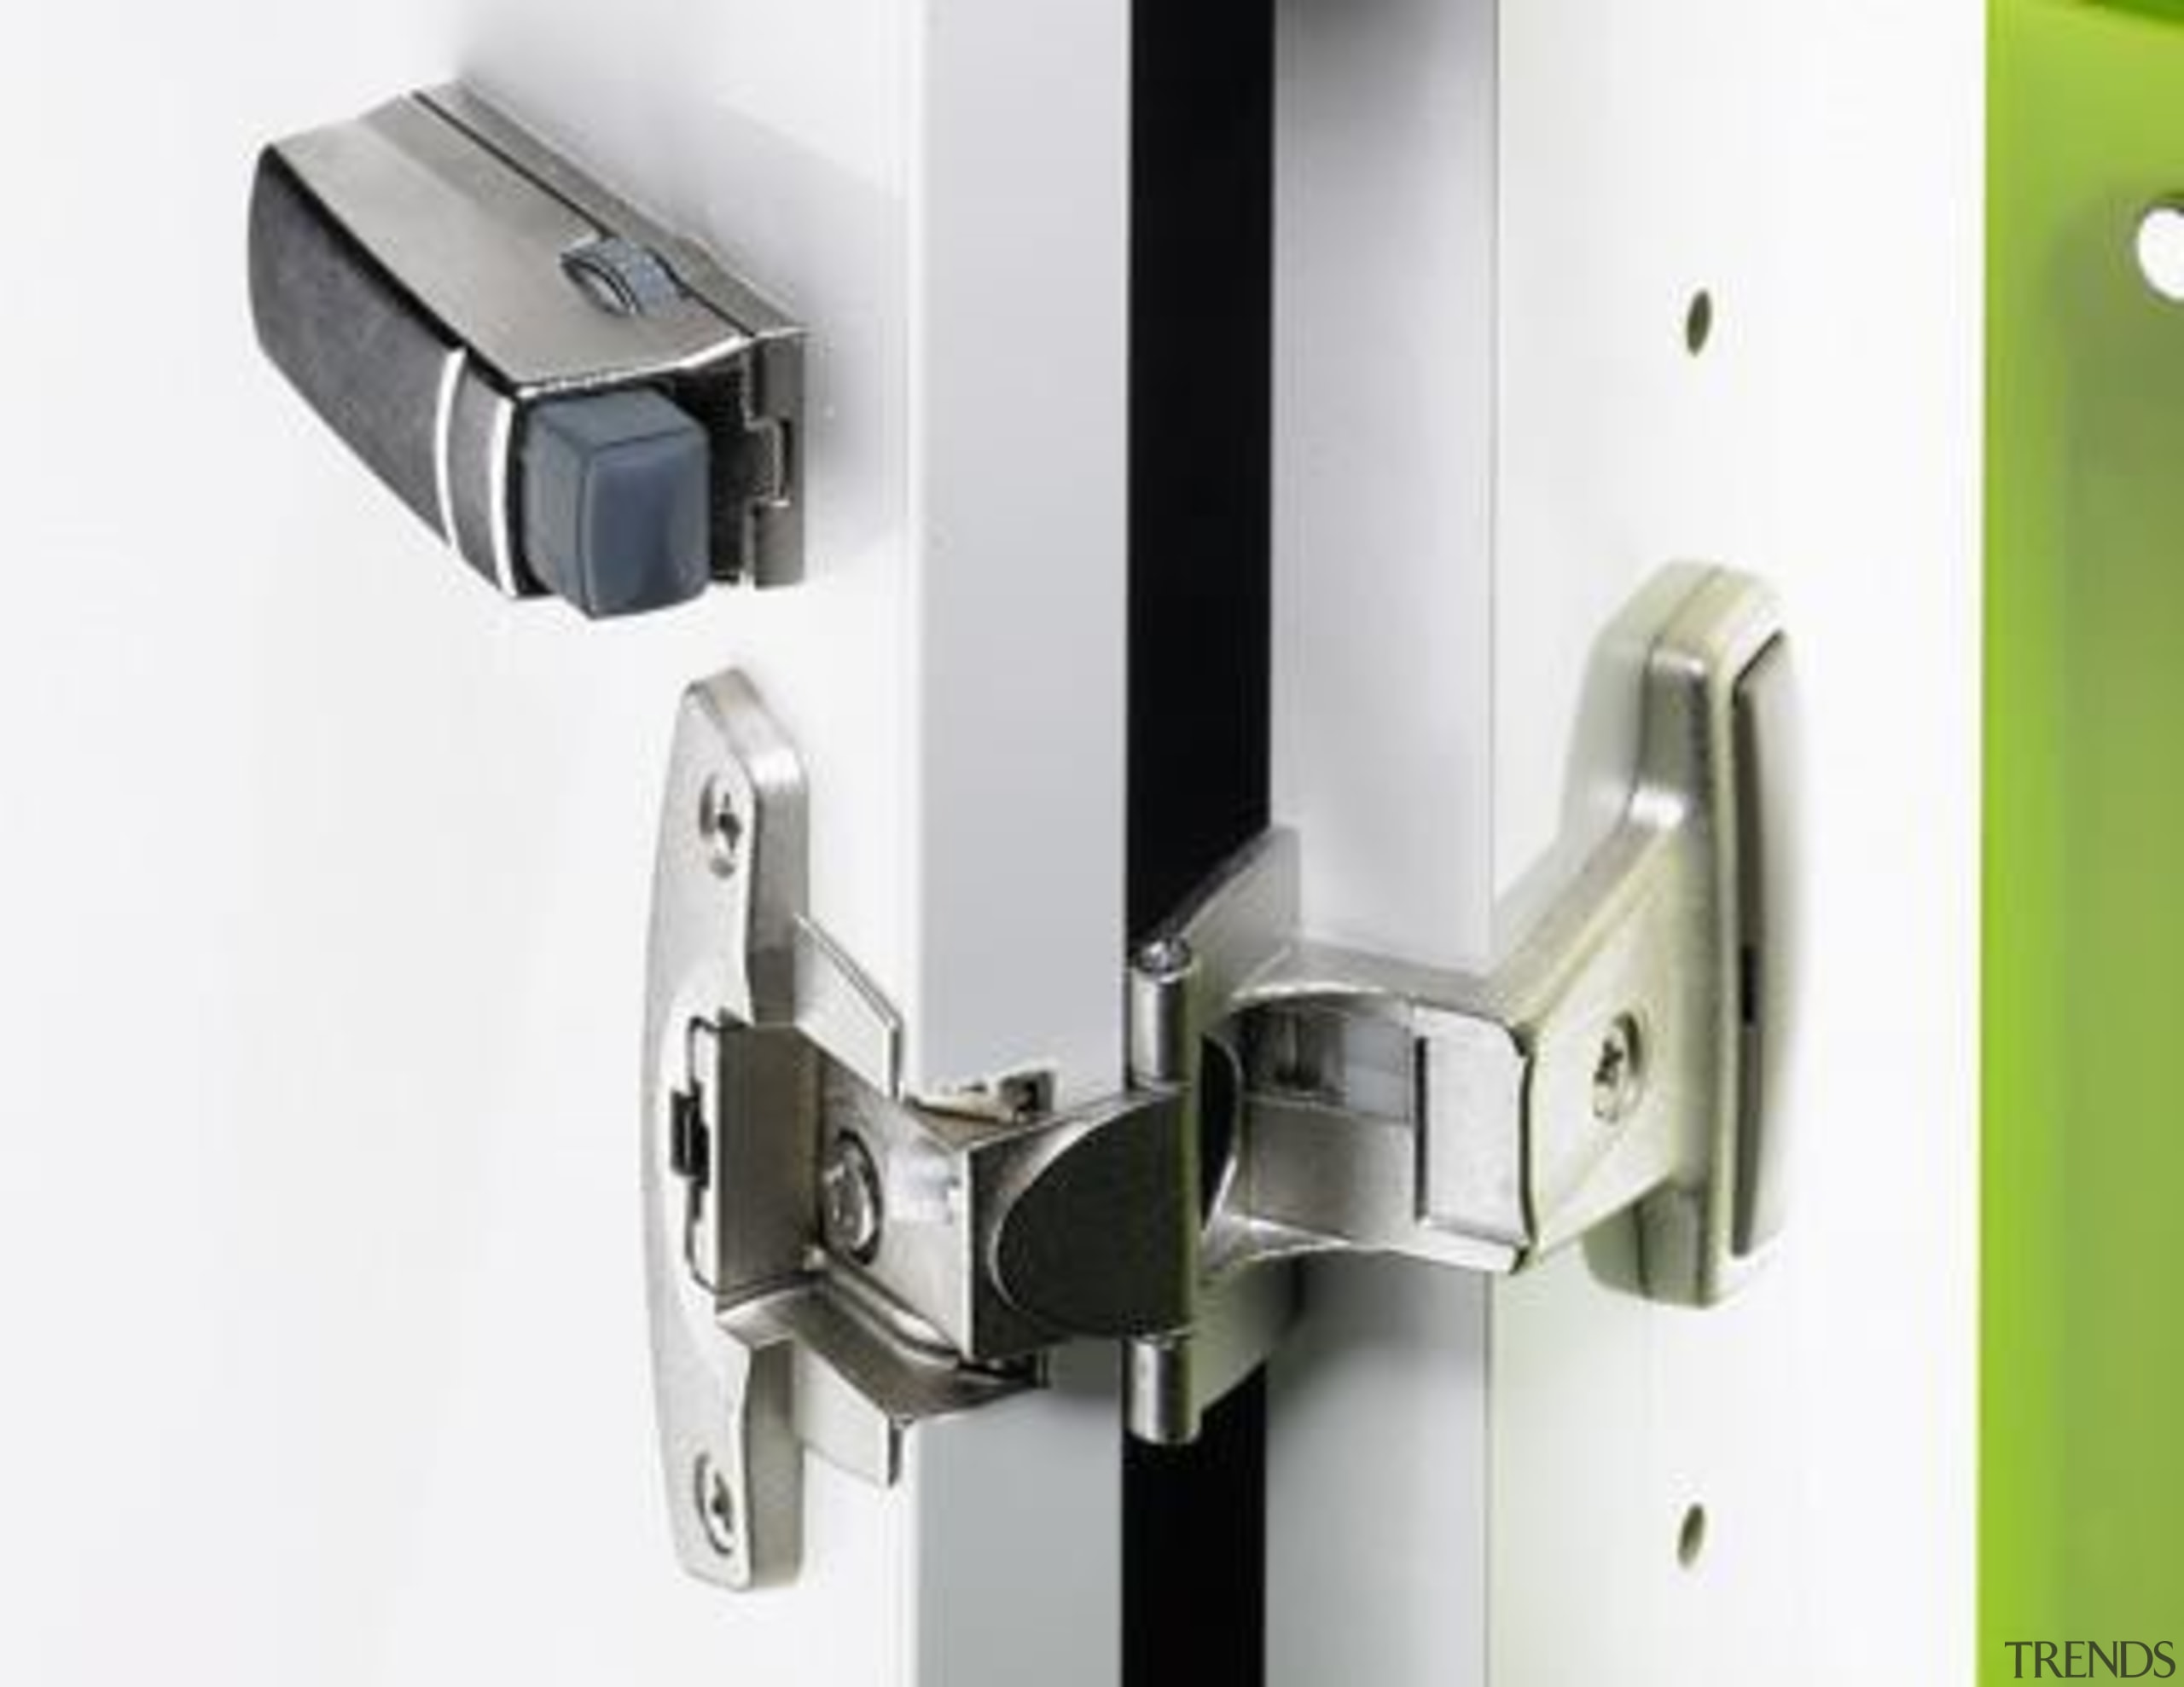 Doors are easy to align, with the optional hardware, hardware accessory, hinge, lock, product, product design, white